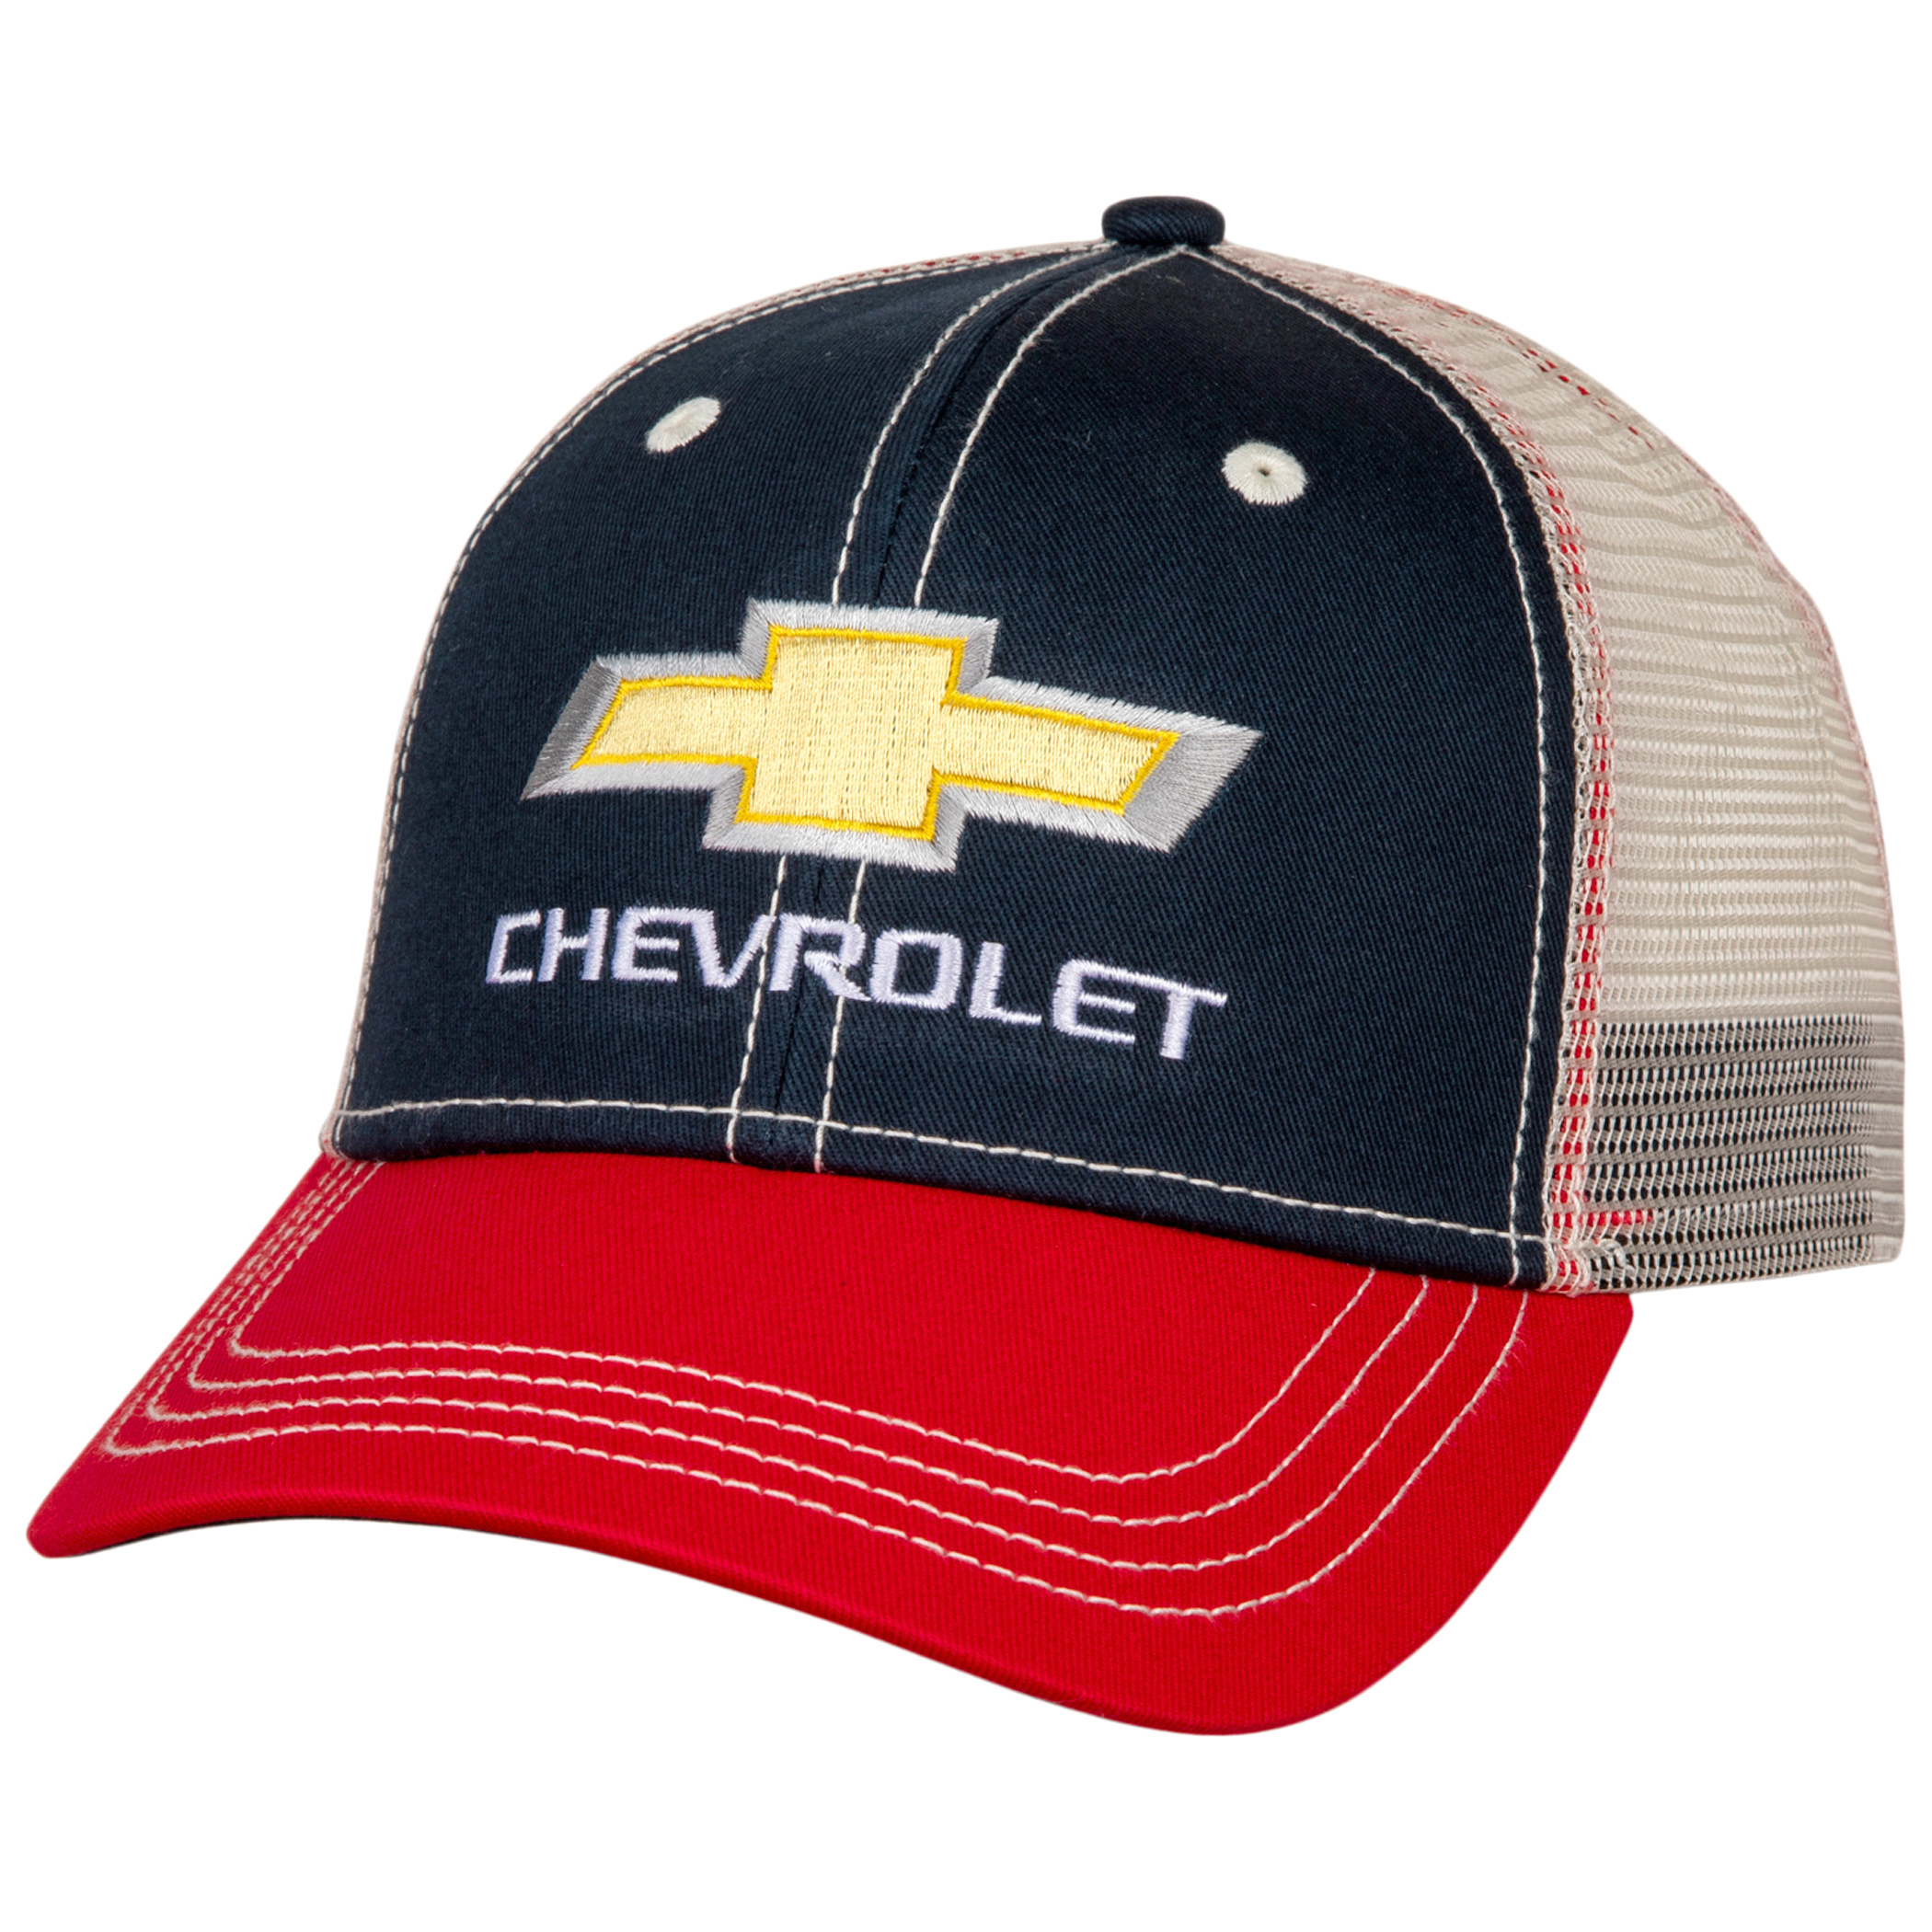 Chevrolet Logo Adjustable Mesh Snapback Hat